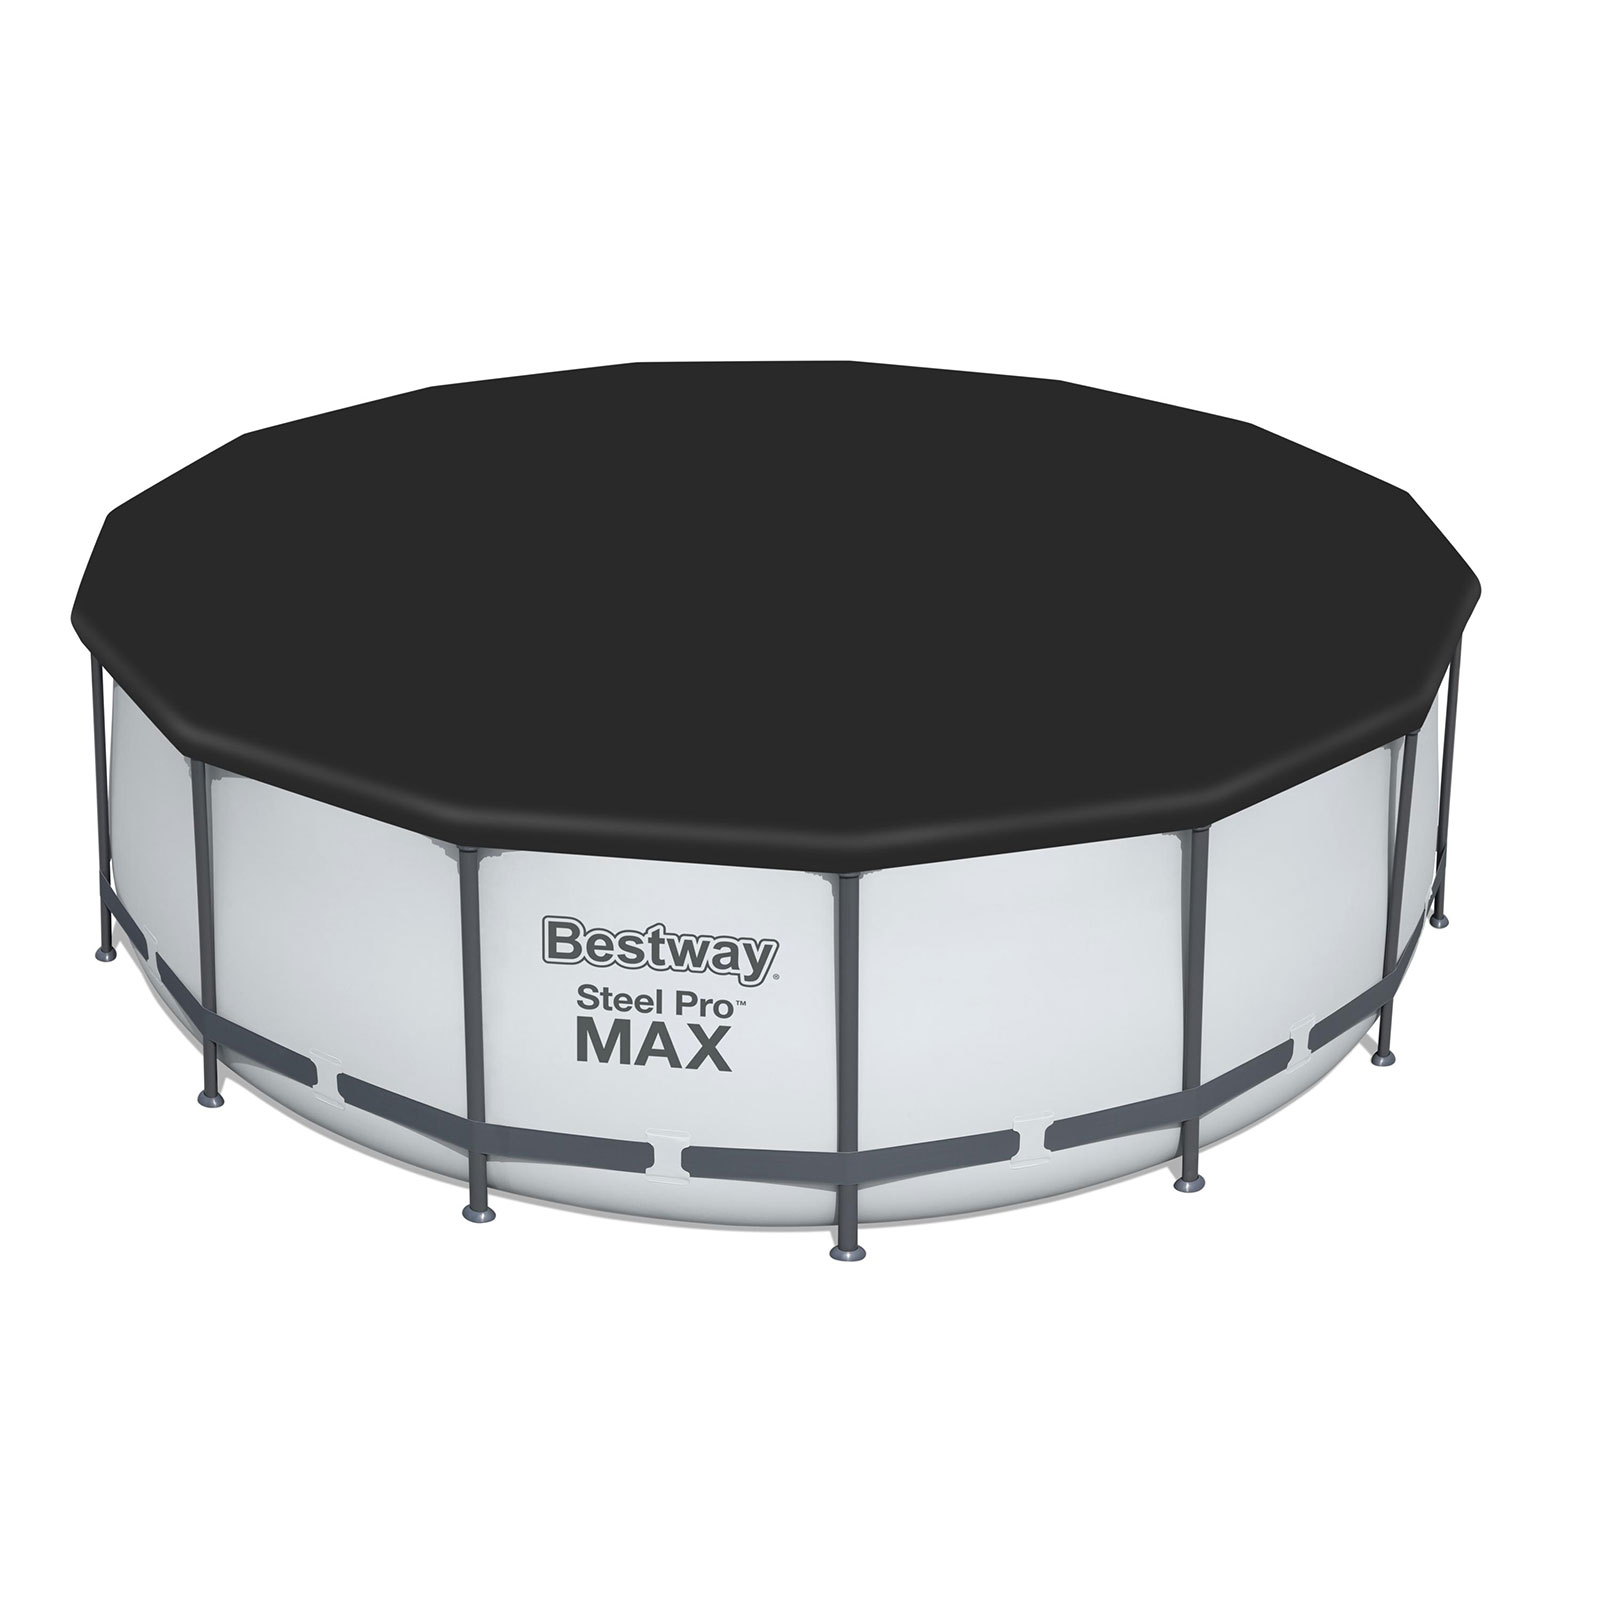 12ft Bestway Steel Pro Max Above Ground Frame Swimming